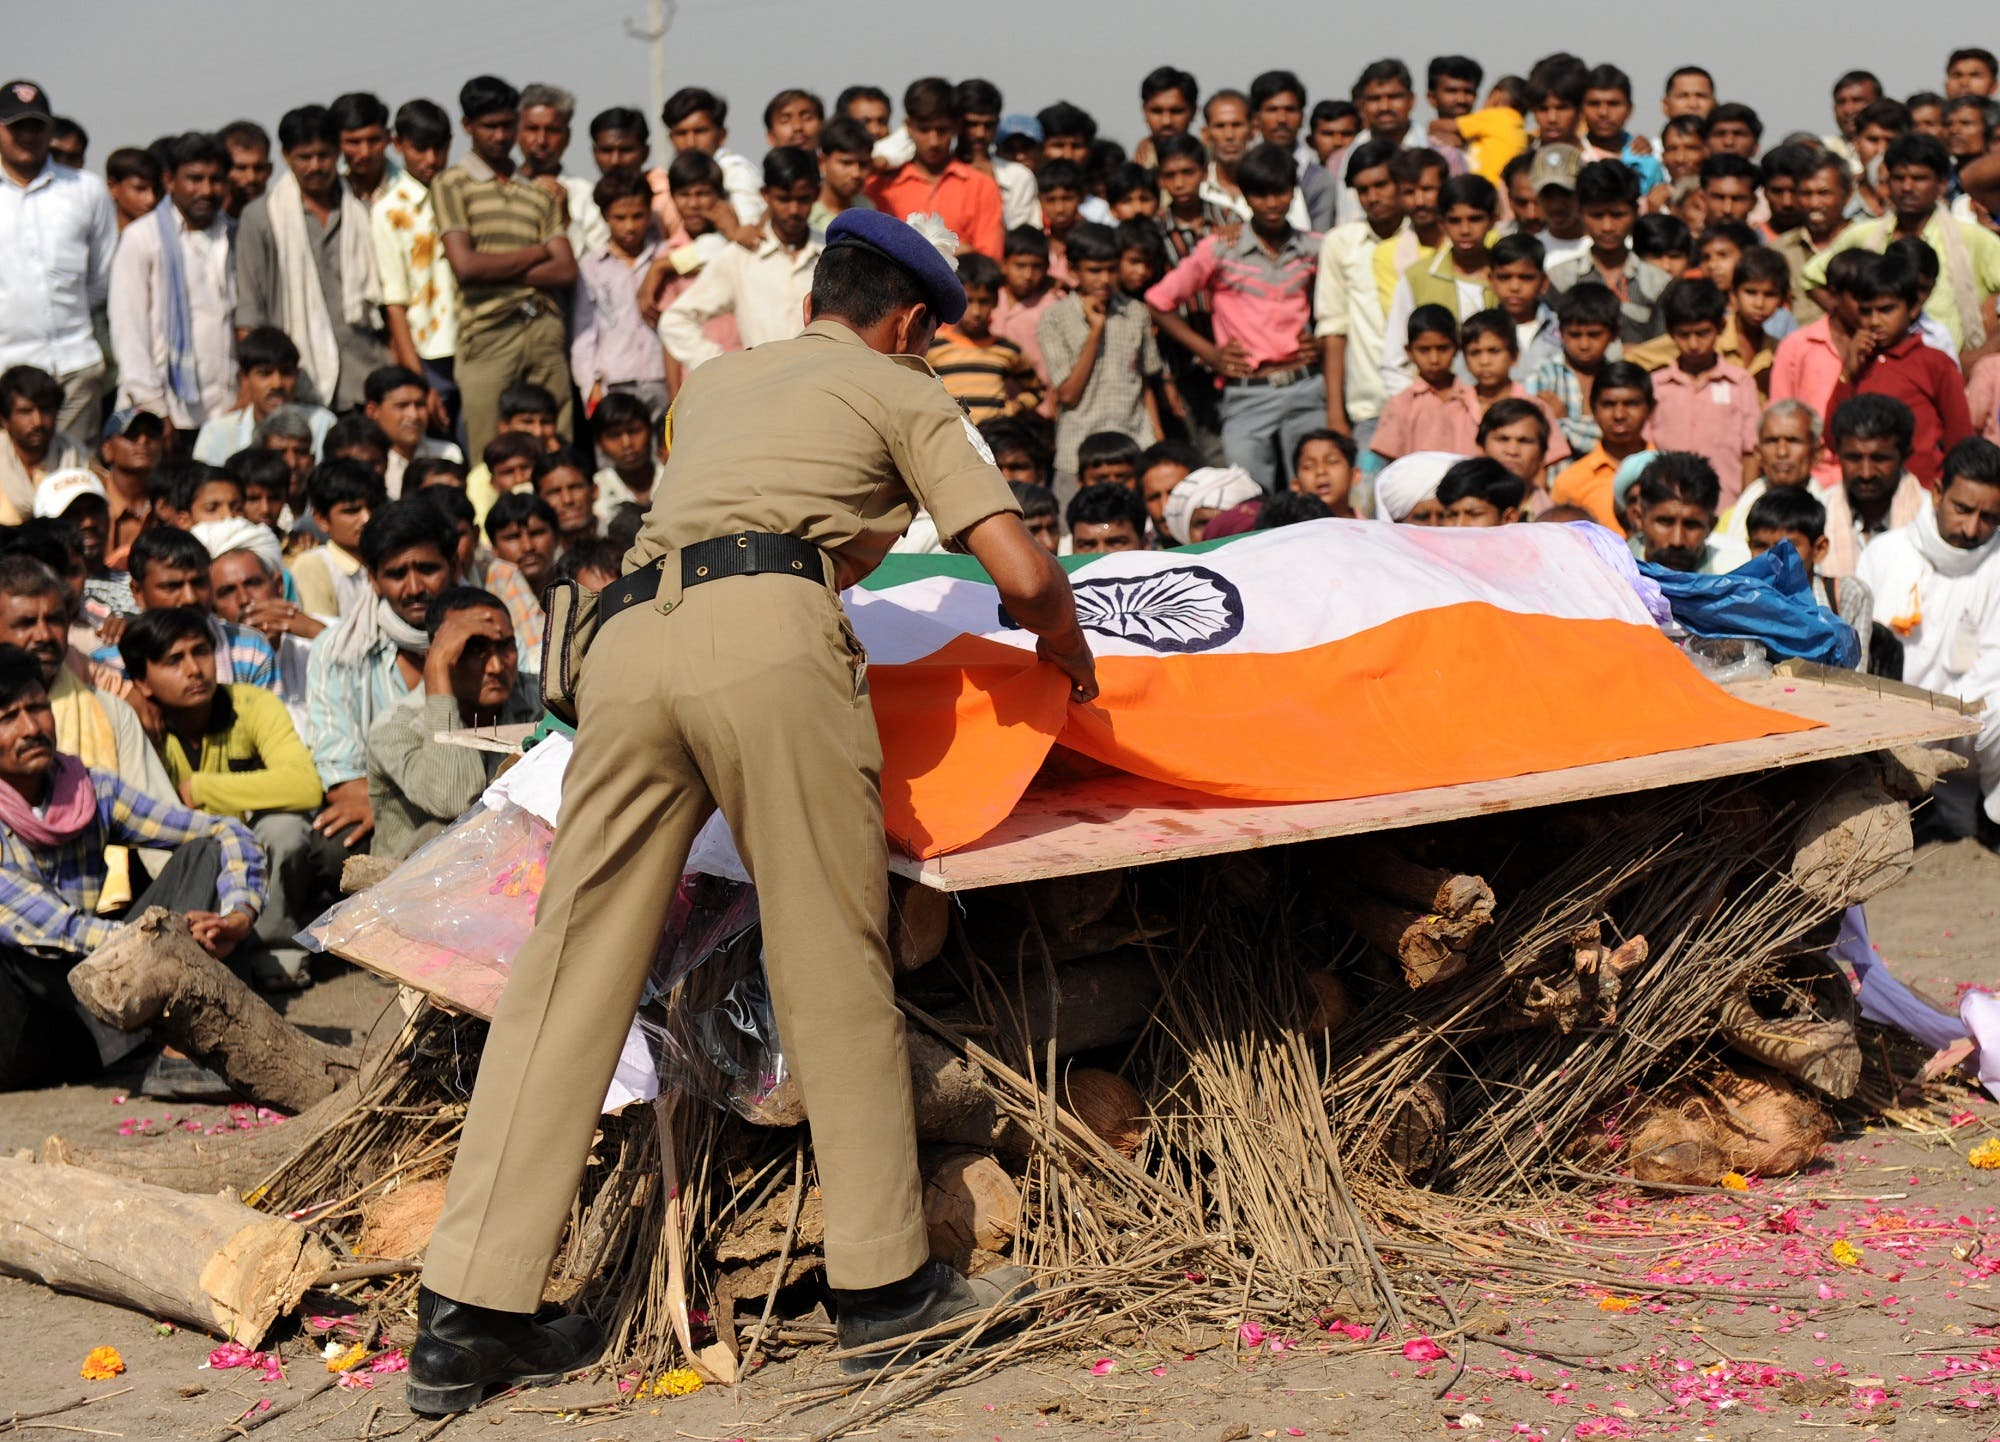 A CRPF officer removes the national flag from the coffin of his colleague near Ahmedabad on March 20, 2010. (AFP)